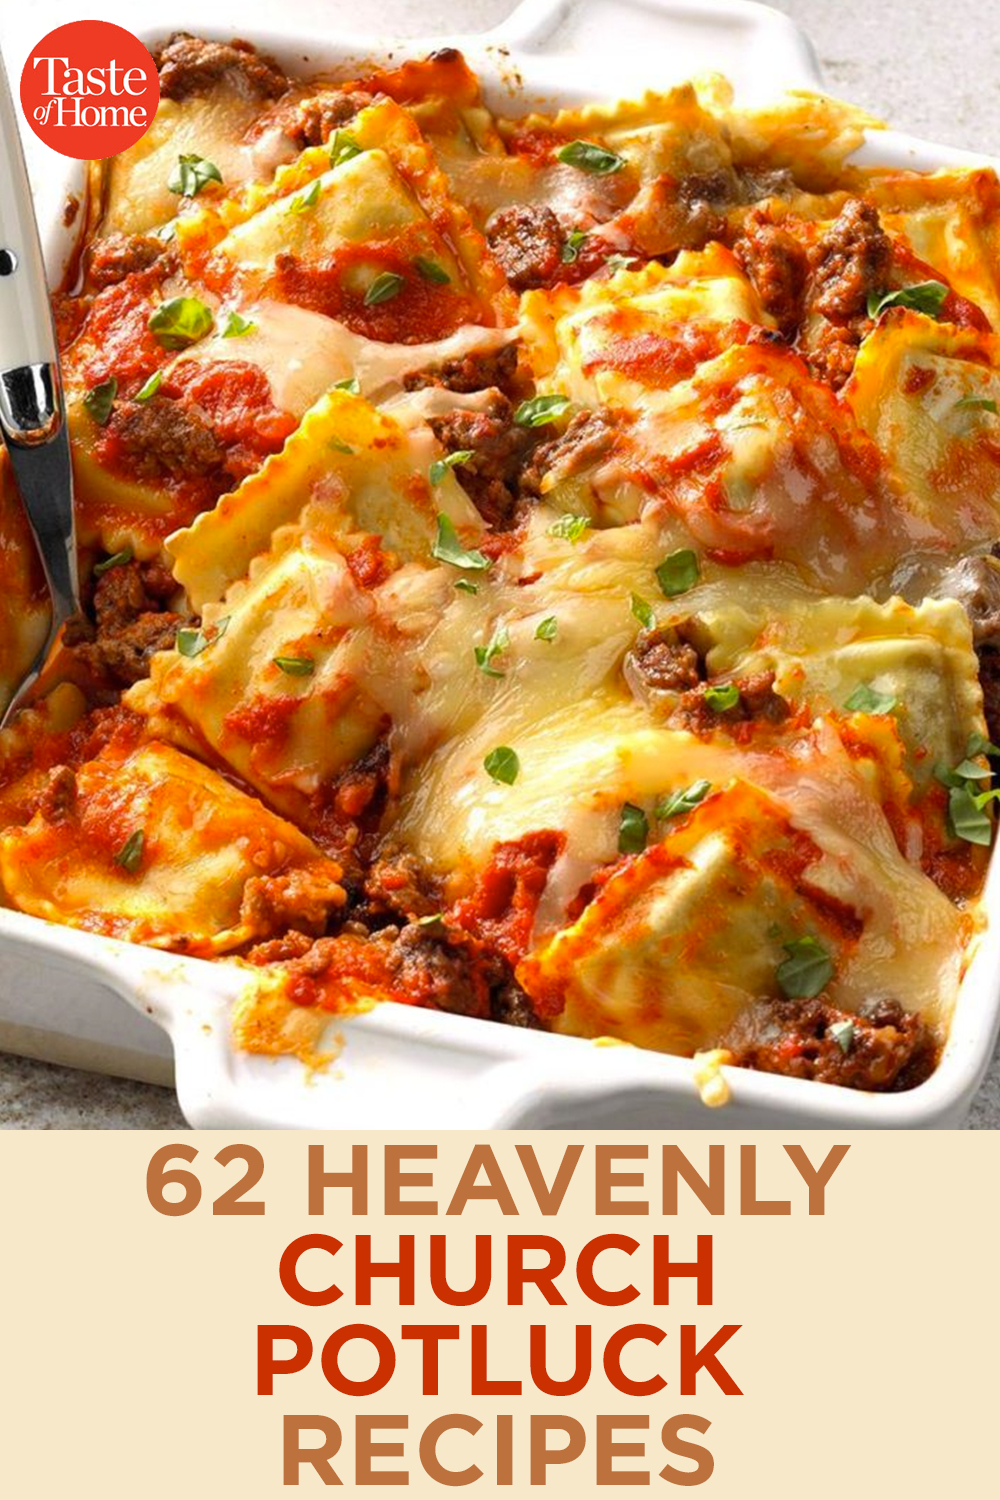 62 Heavenly Church Potluck Recipes